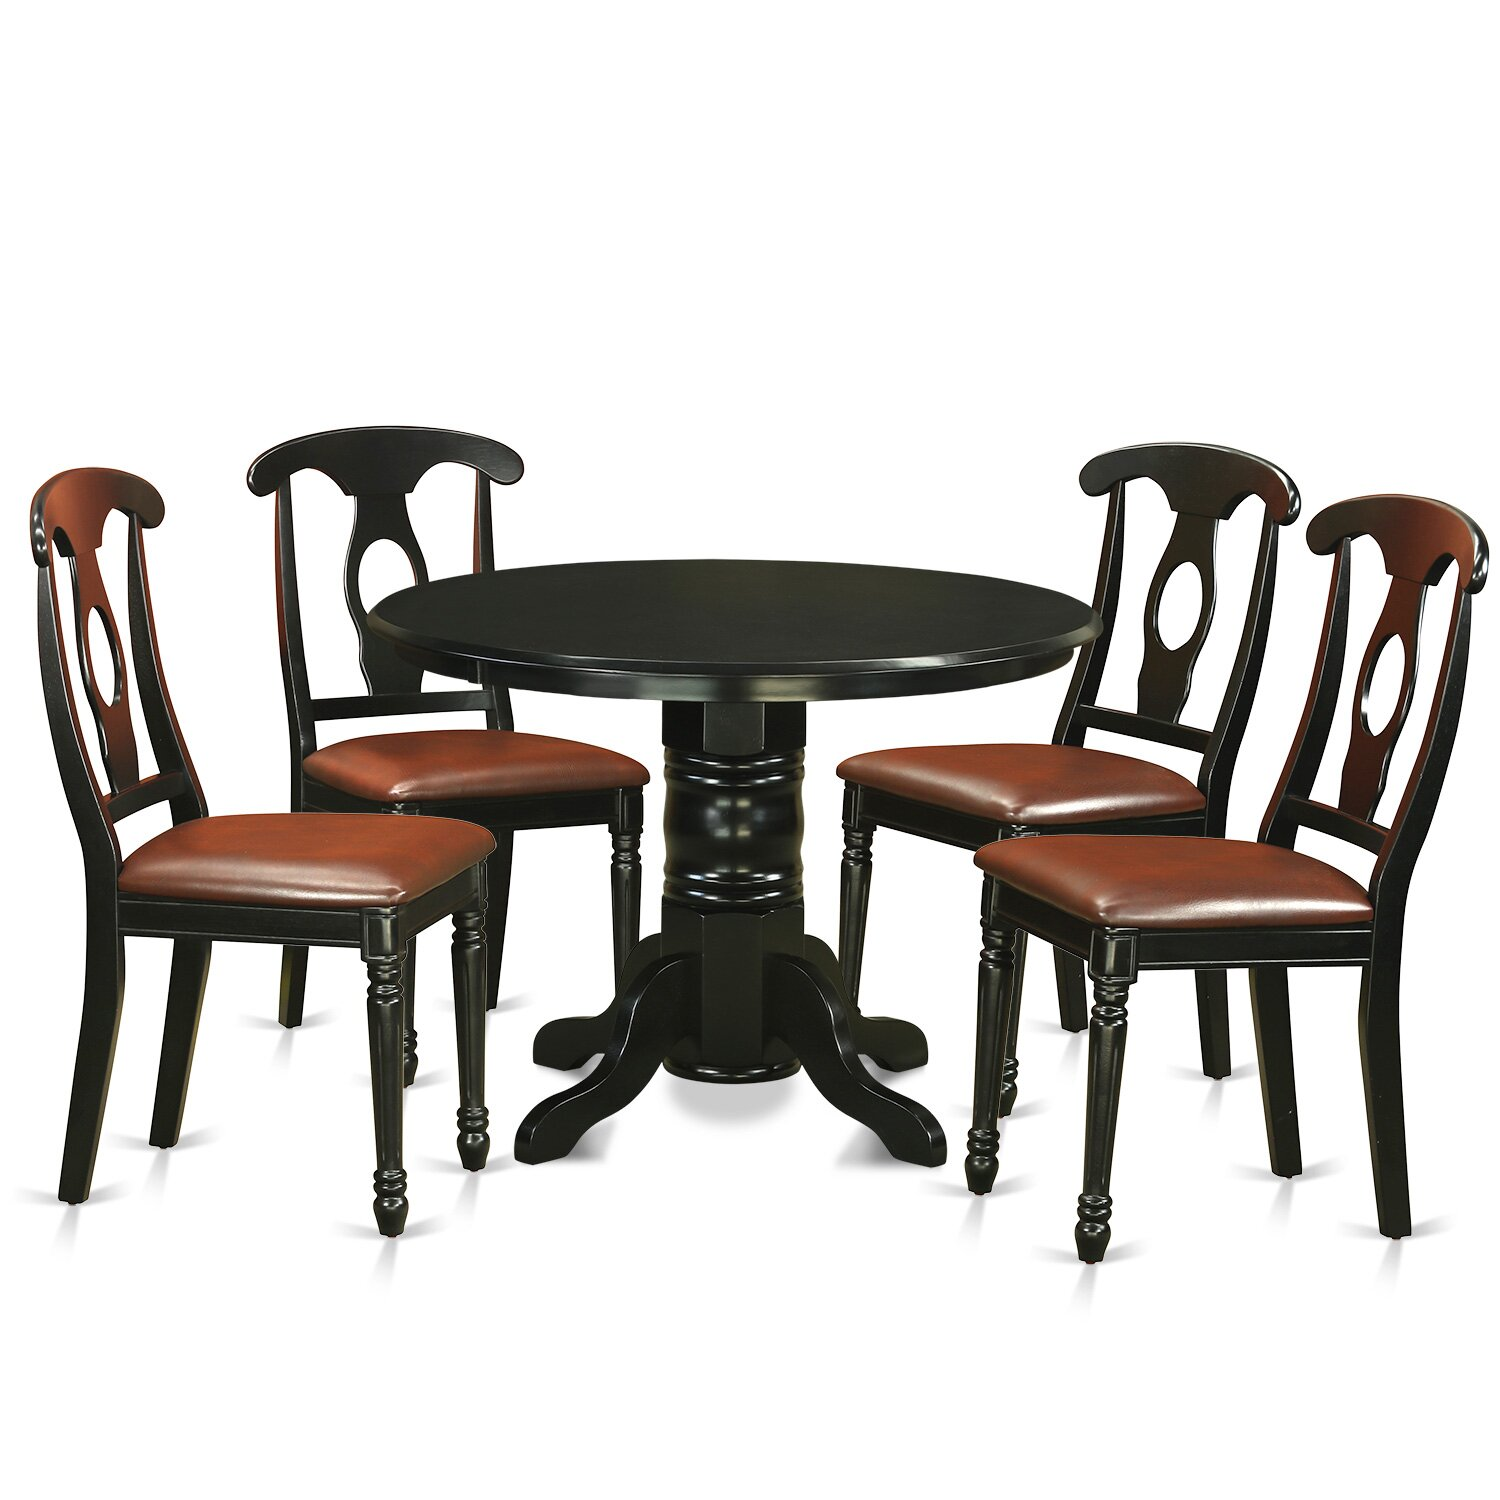 East west shelton 5 piece dining set reviews wayfair for Four chair dining table